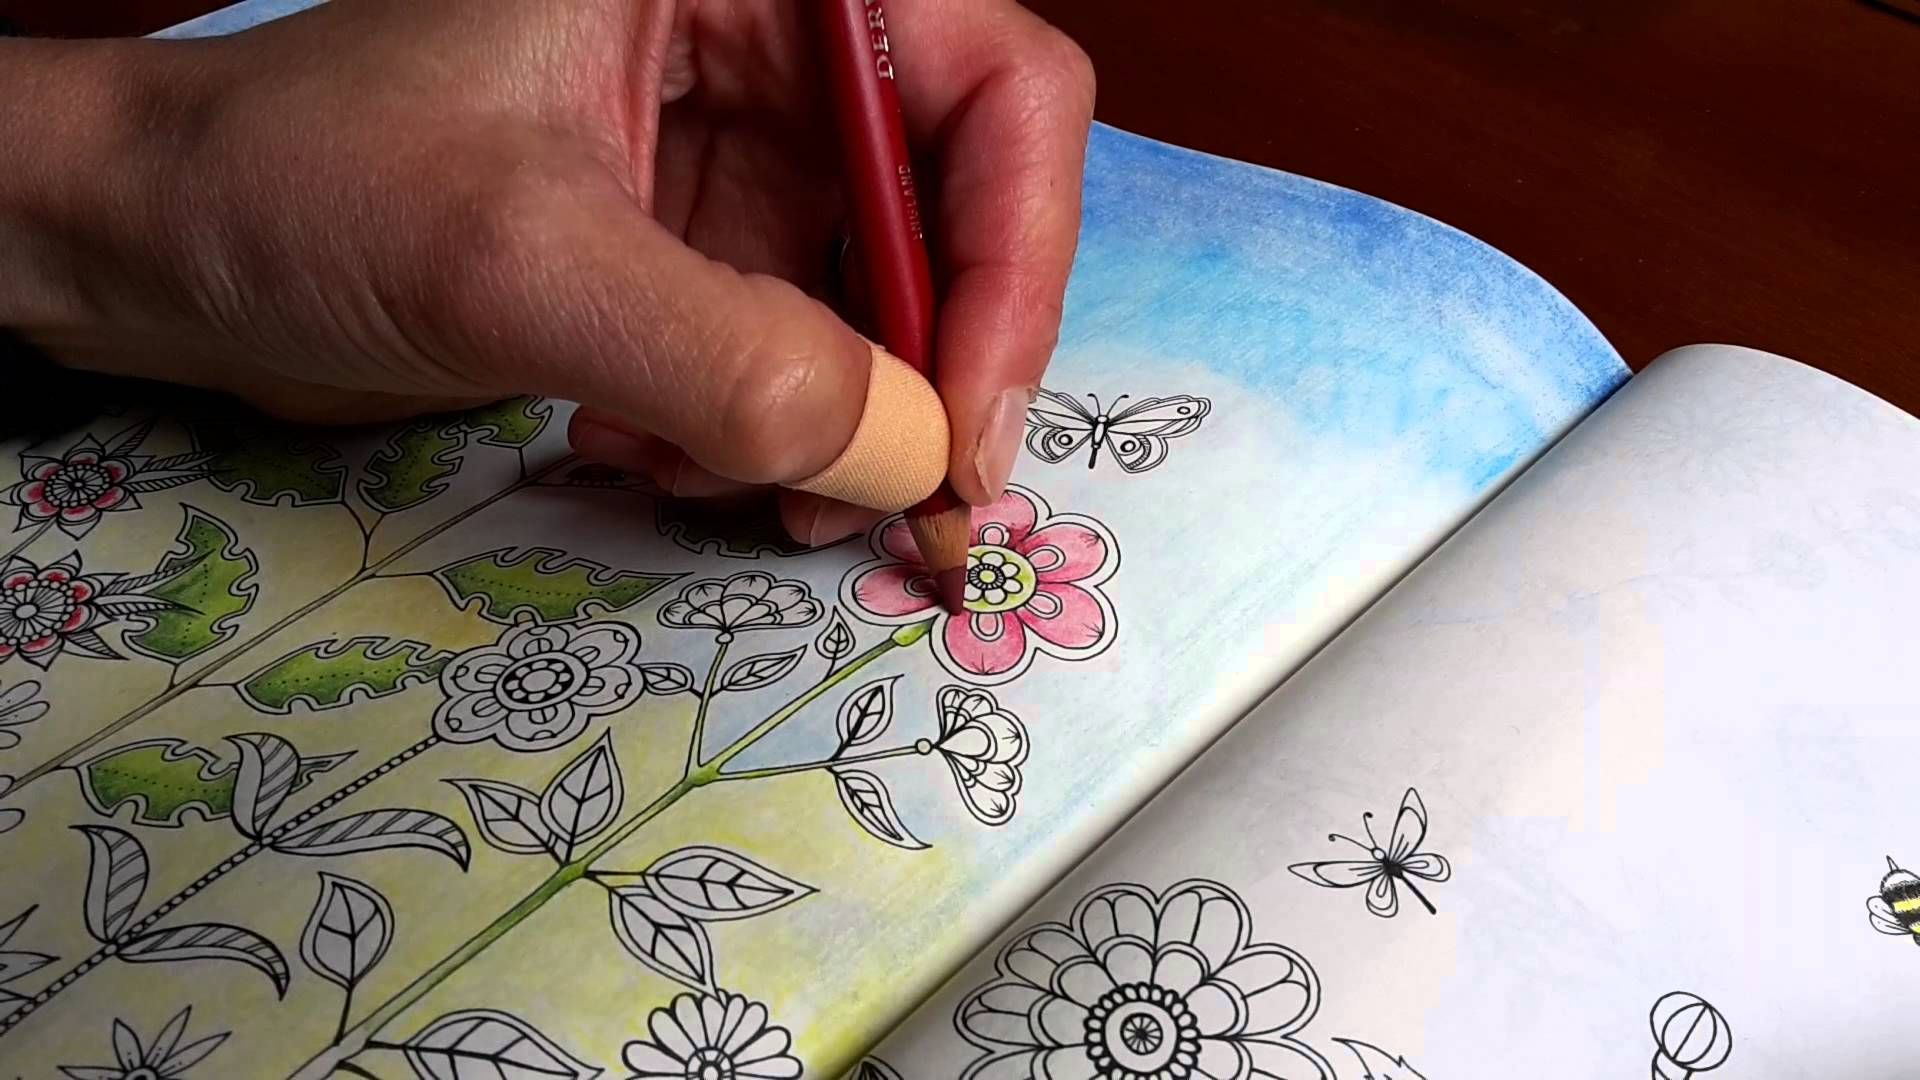 Find This Pin And More On Coloring With Pastel Pencils By Connievdbos